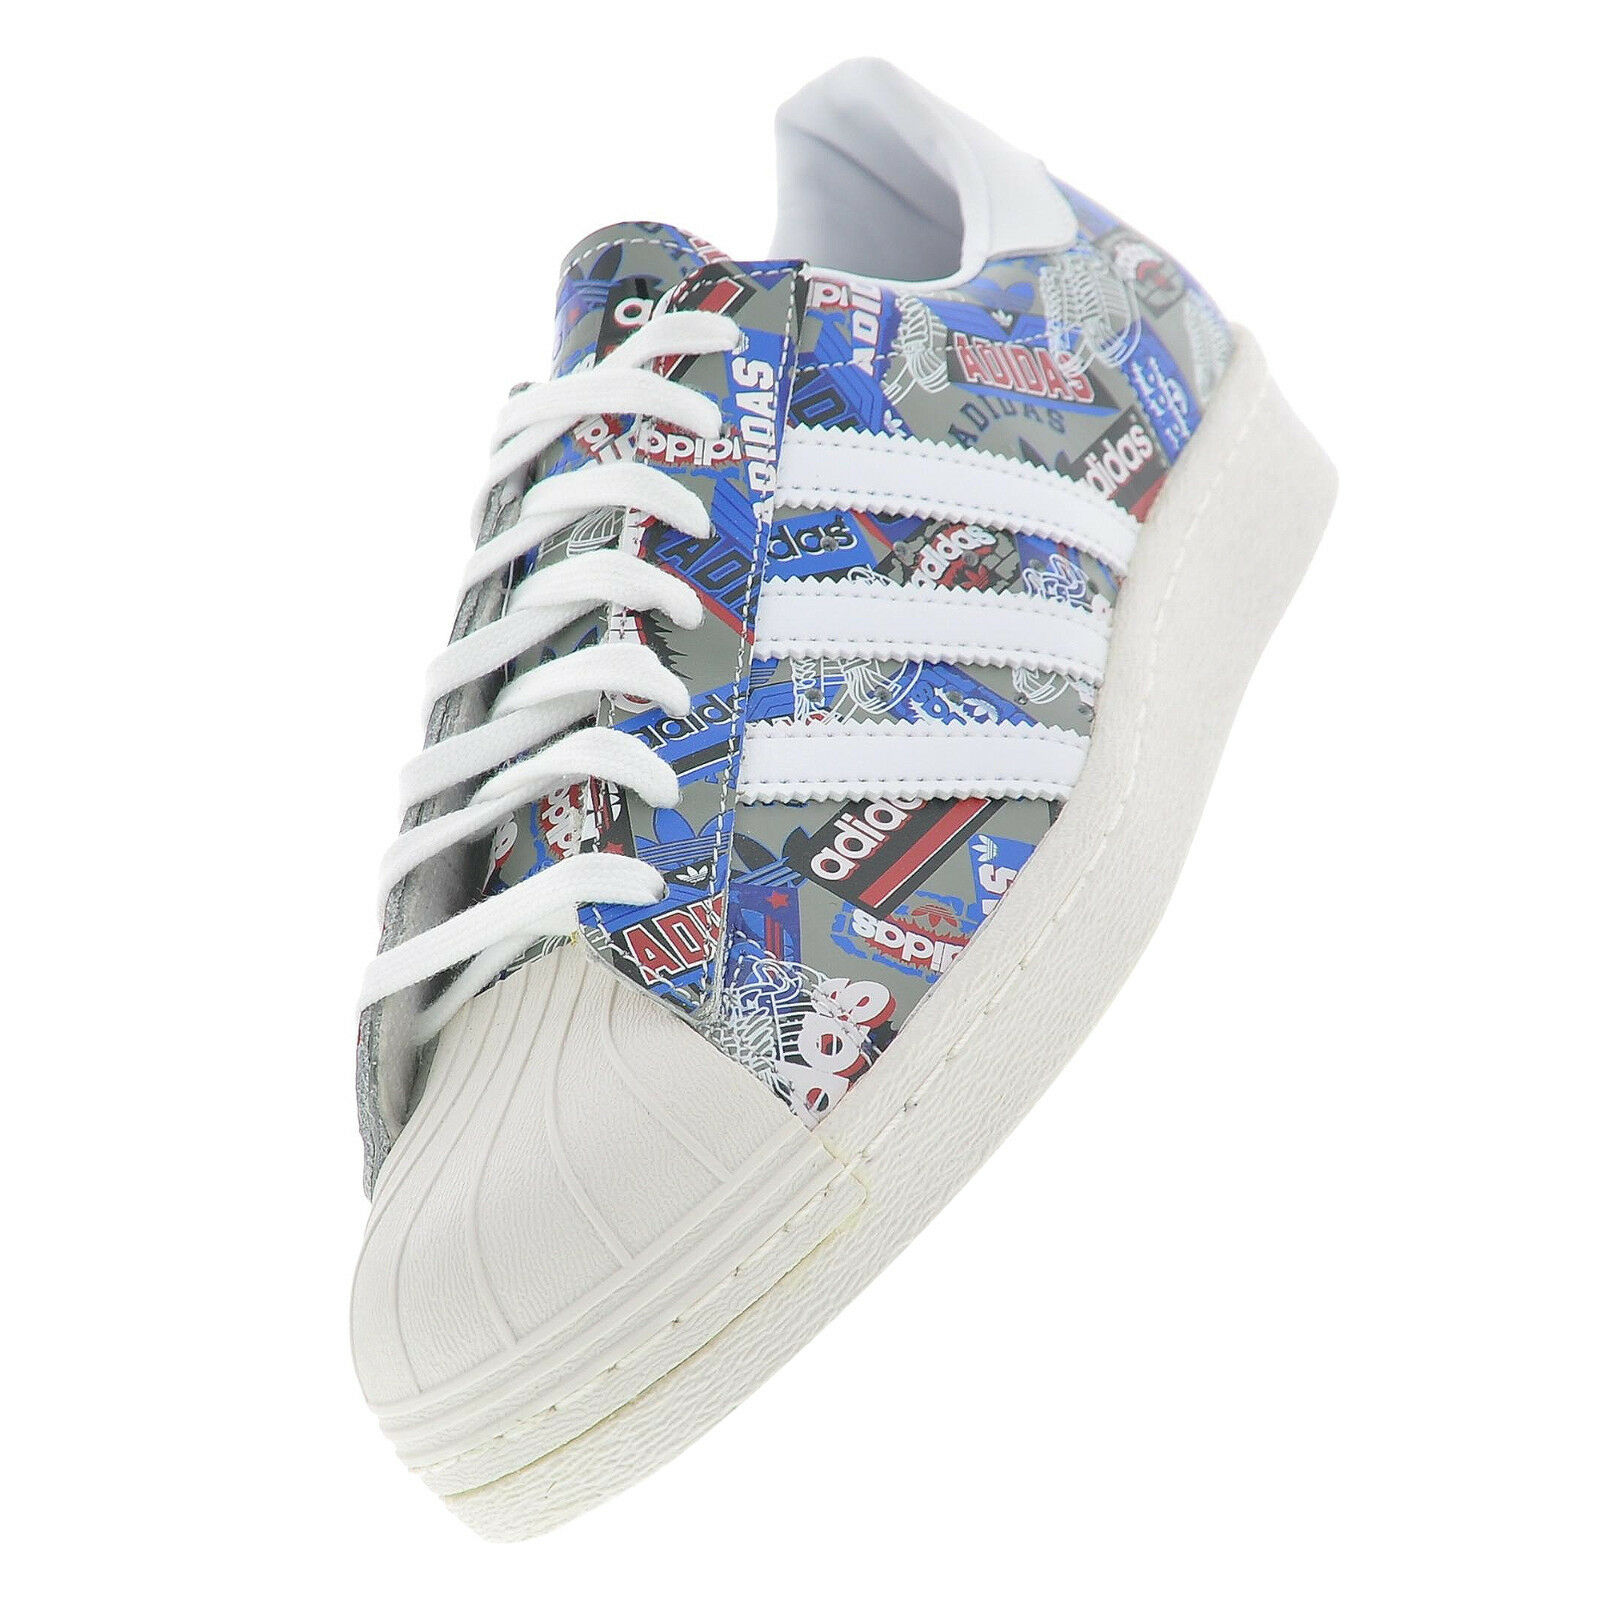 Adidas NIGO SUPERSTAR 80s PIONEER AOP Shell Toe campus Shoe gazelle~Mens Price reduction